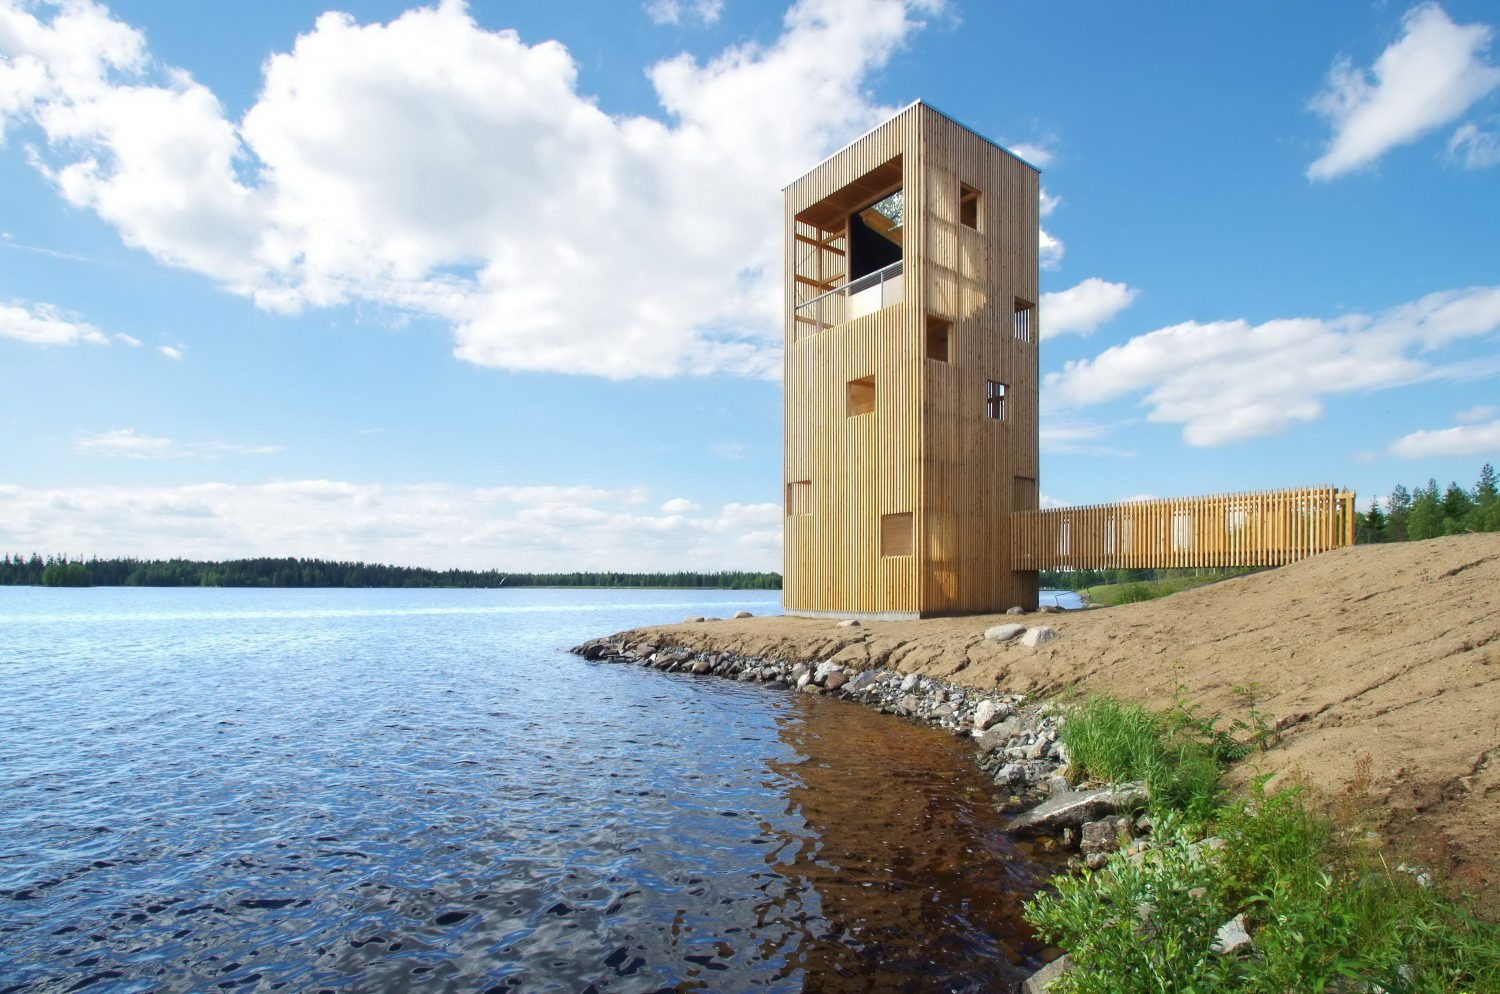 Periscope Tower by OOPEAA